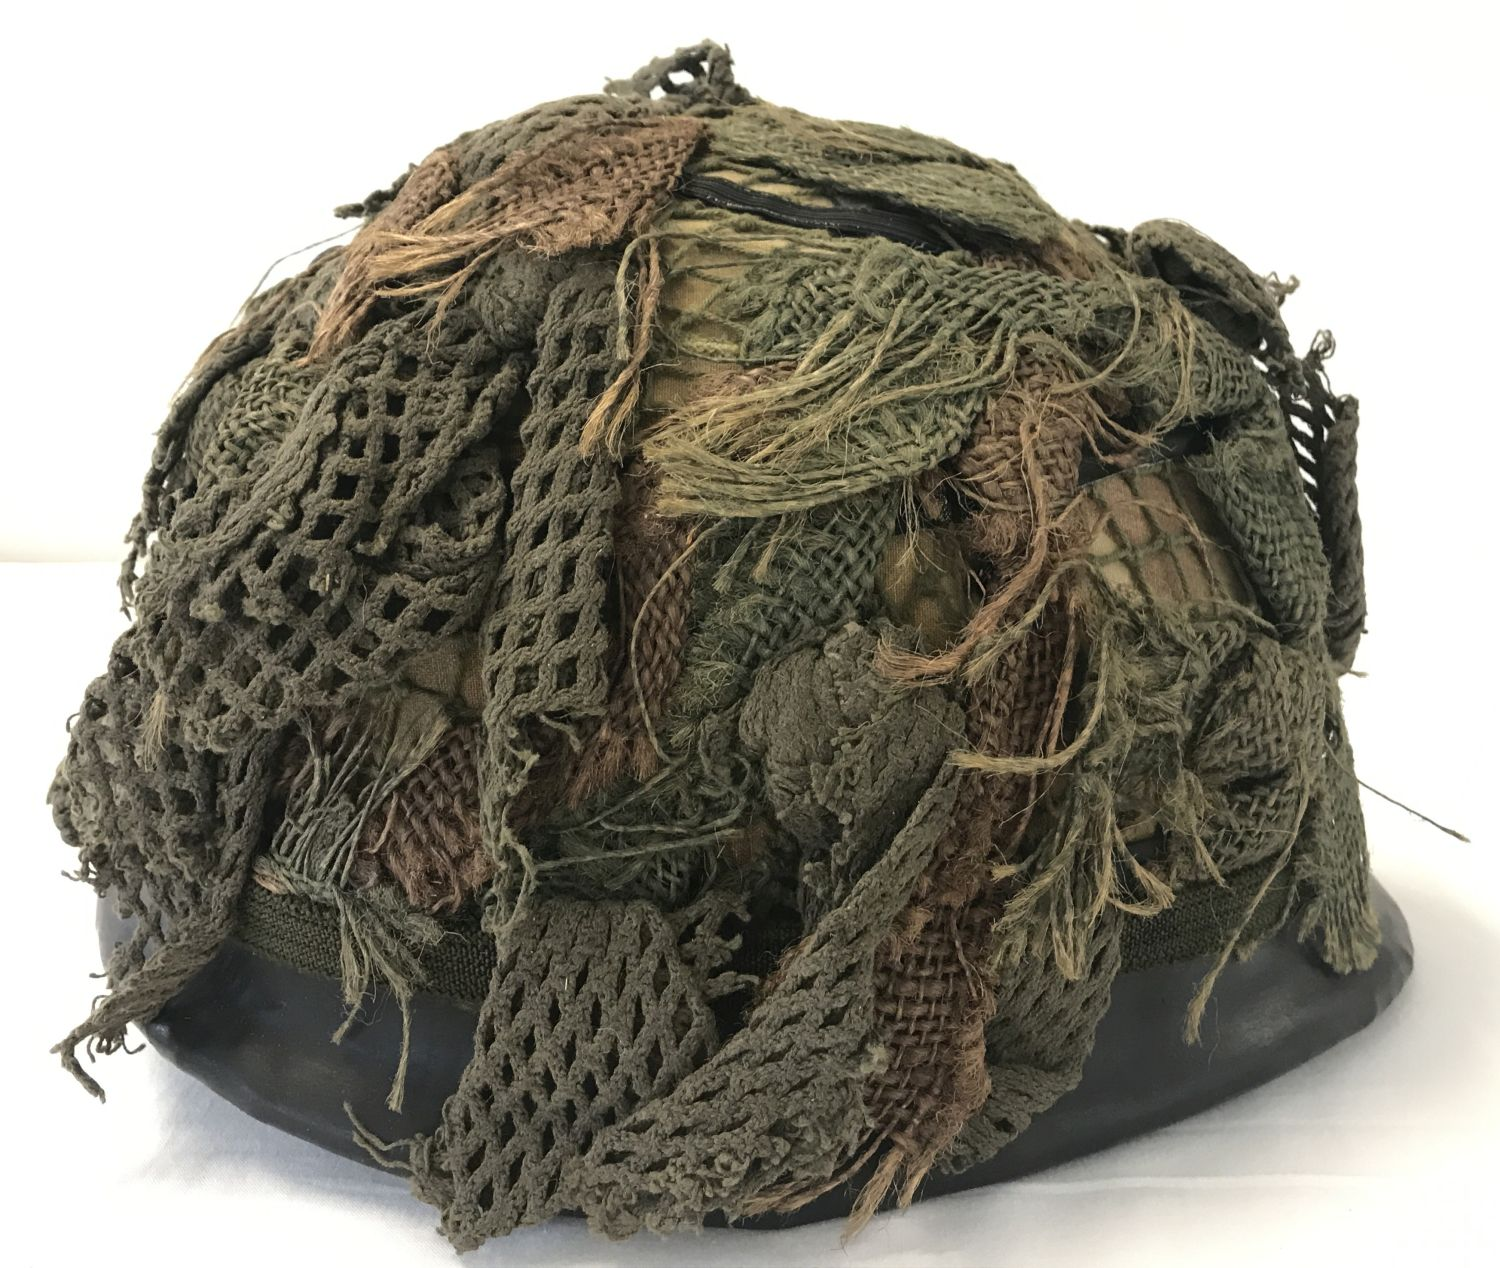 Lot 125 - A Belgian Army OTAN M1951 steel helmet, US M1 style, circa 1985. With net and scrim.